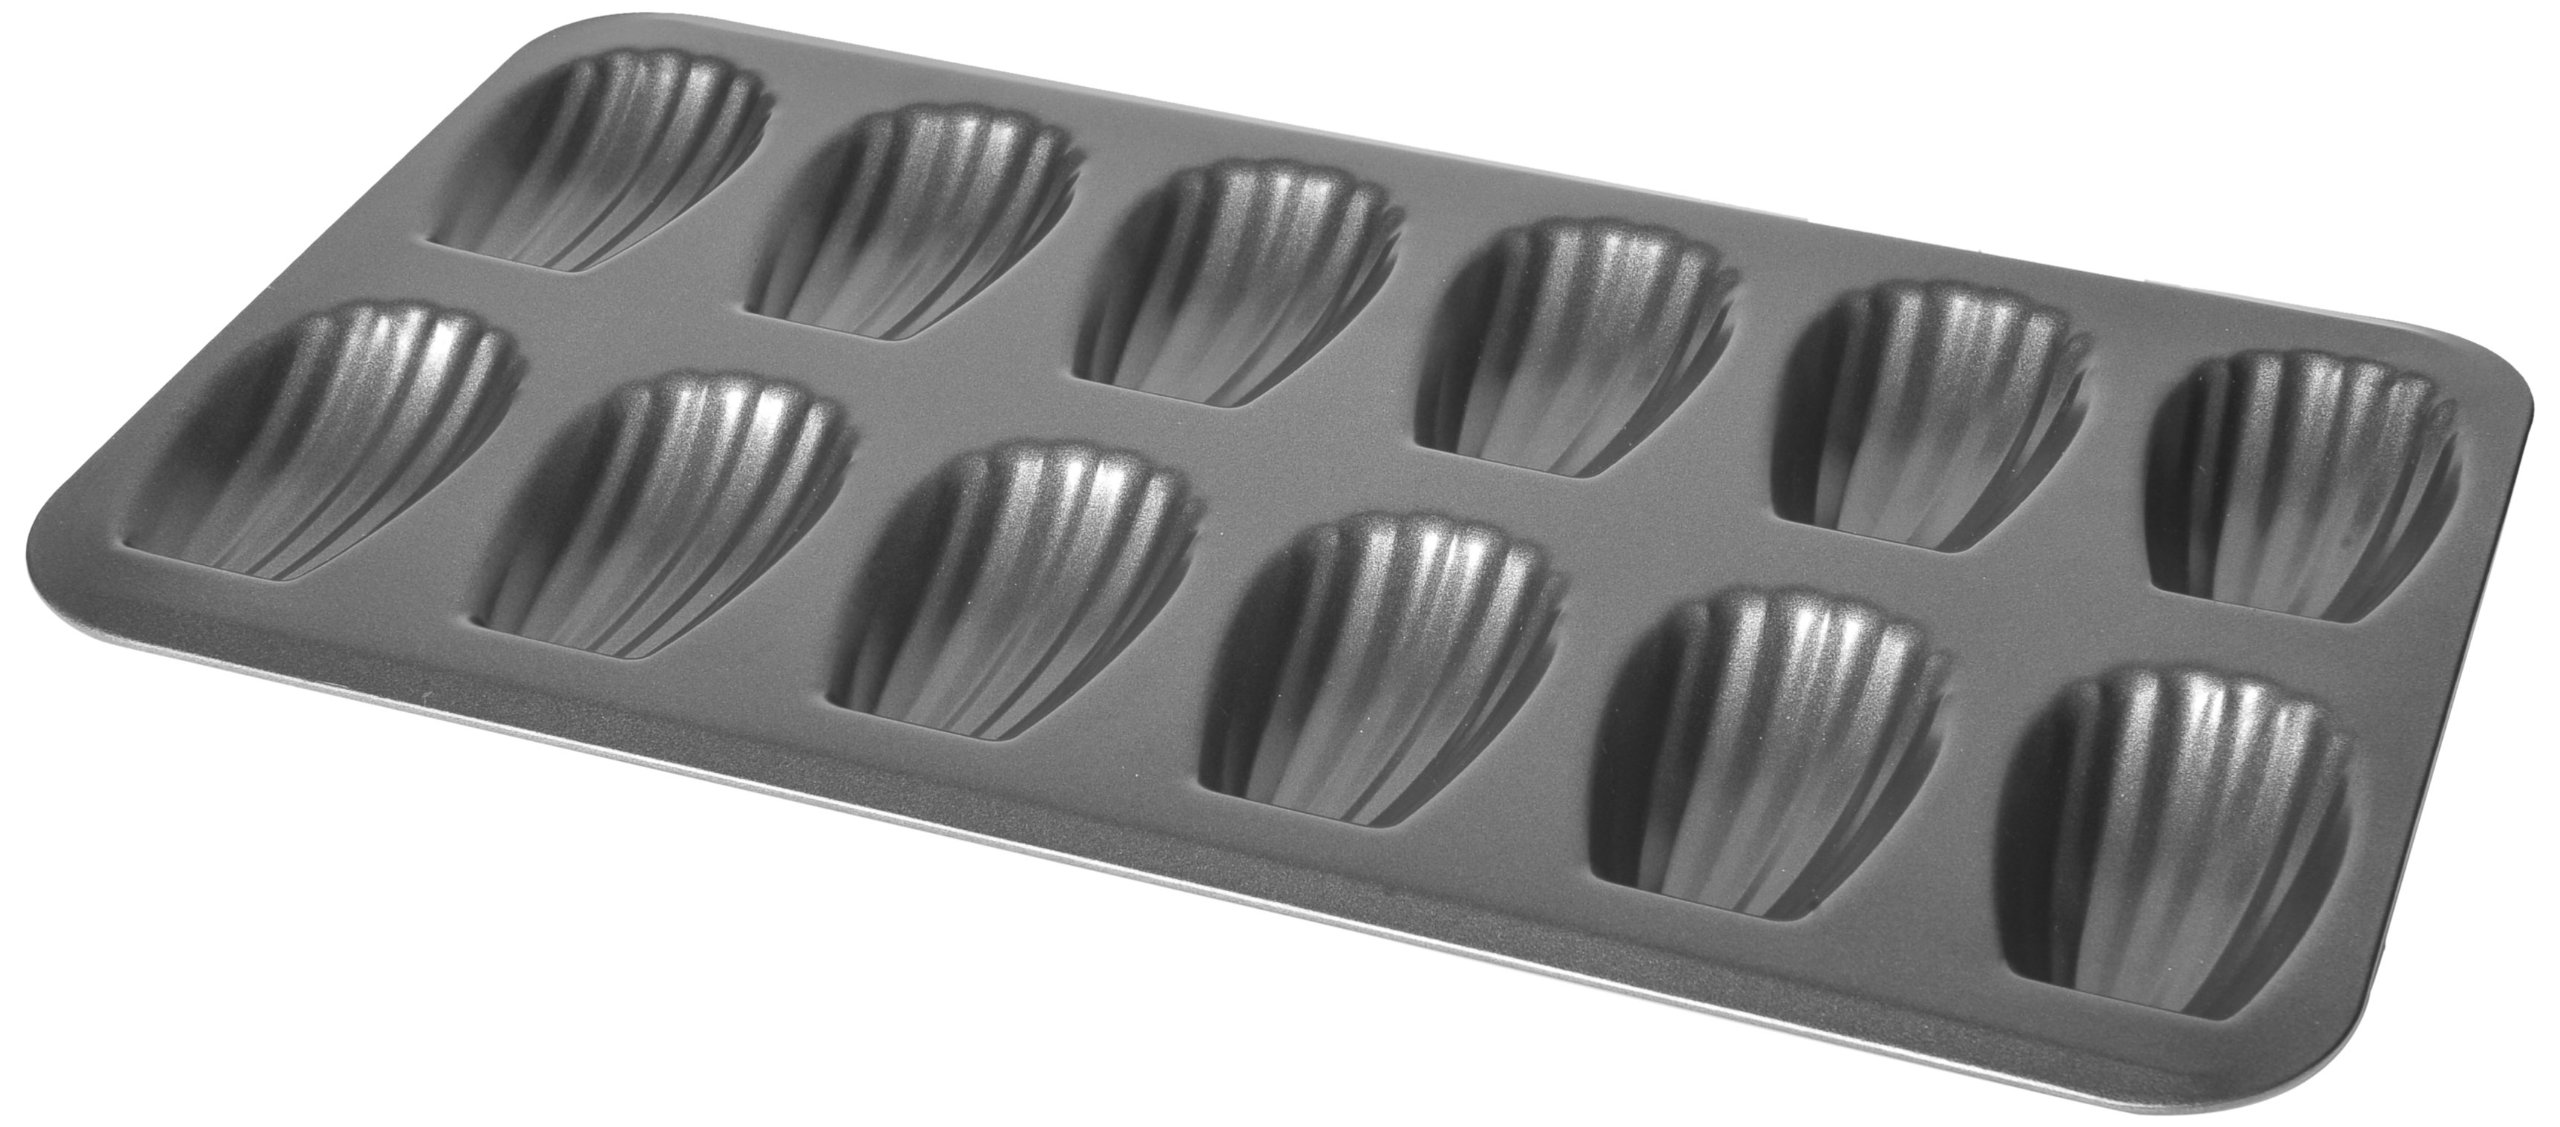 Chloe's Kitchen 203-167 Madeleine Pan, 12-Cavity by MDC Housewares Inc.